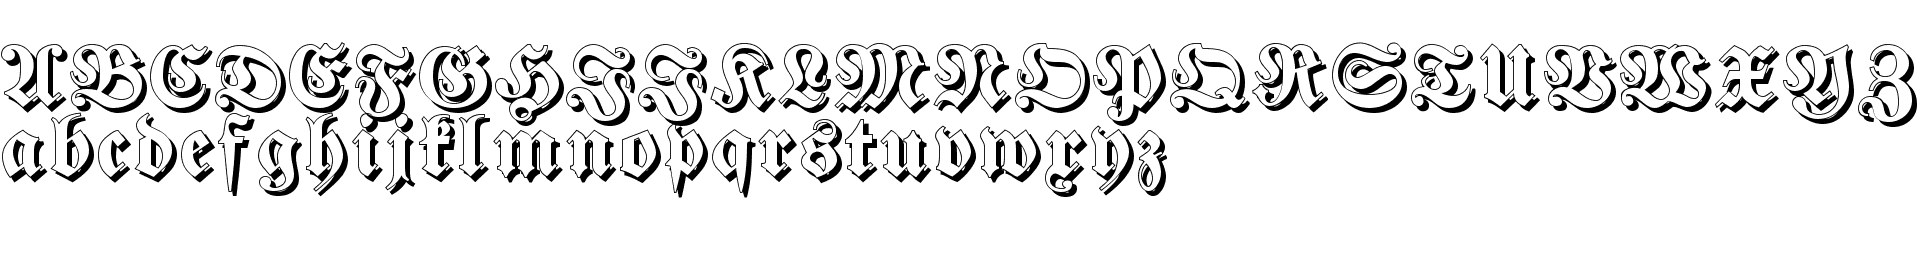 Fraktur Shadowed